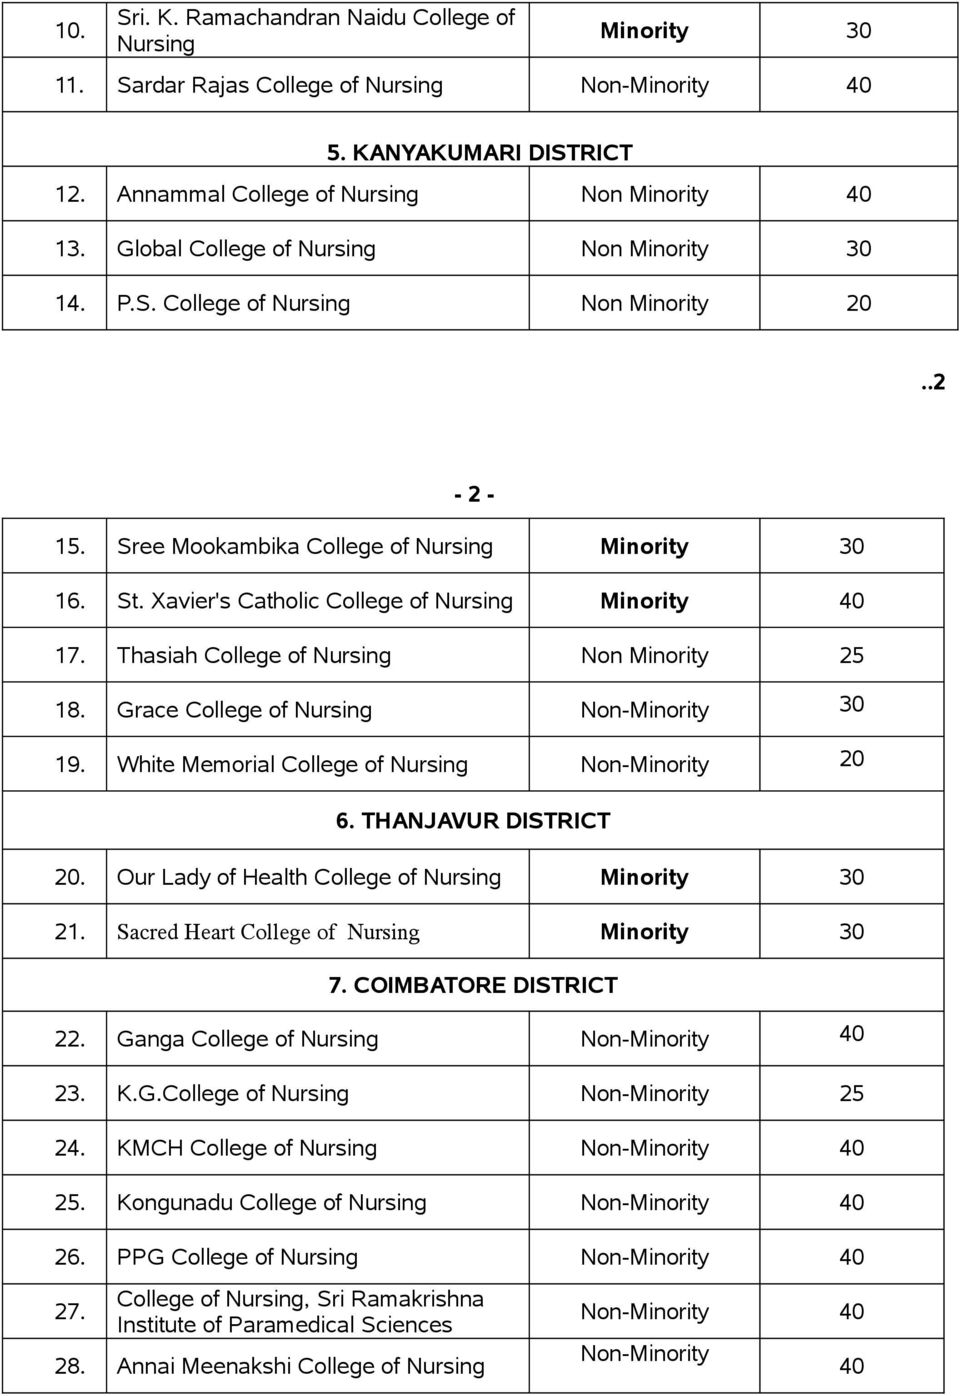 Xavier's Catholic College of Nursing Minority 17. Thasiah College of Nursing Non Minority 25 18. Grace College of Nursing 30 19. White Memorial College of Nursing 20 6. THANJAVUR DISTRICT 20.